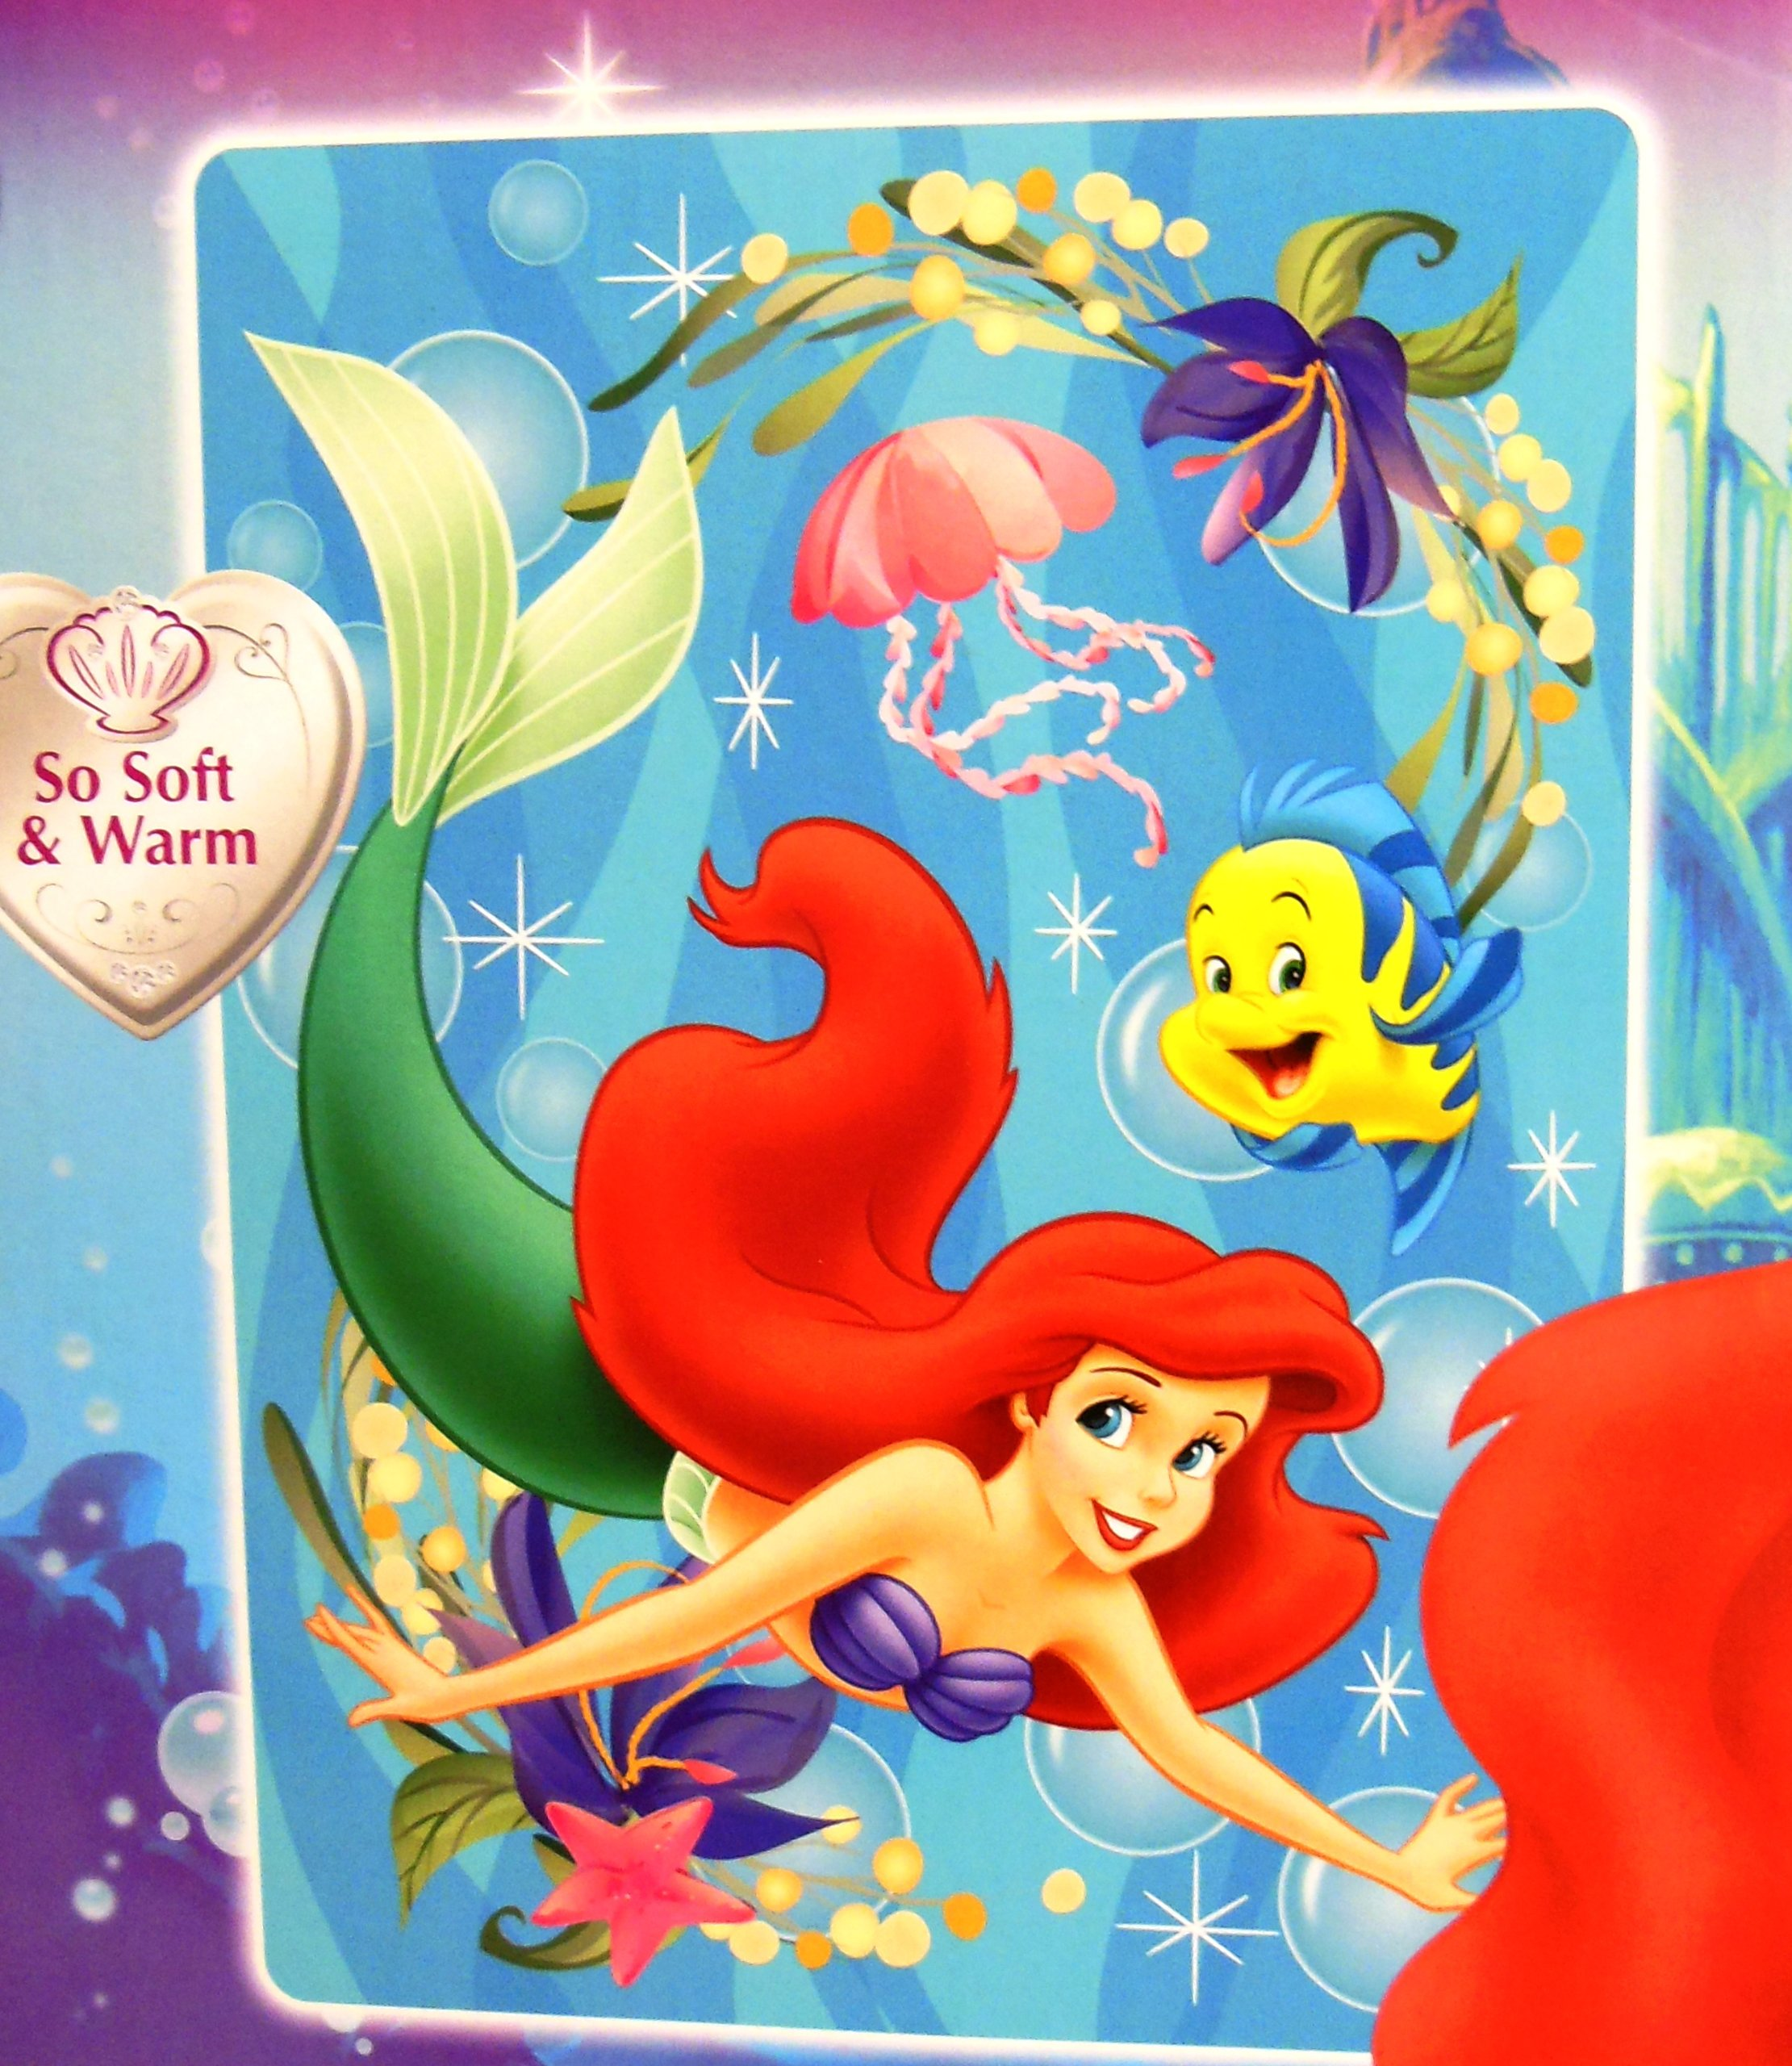 Disney Little Mermaid Twin Size Plush Blanket 60''x80''